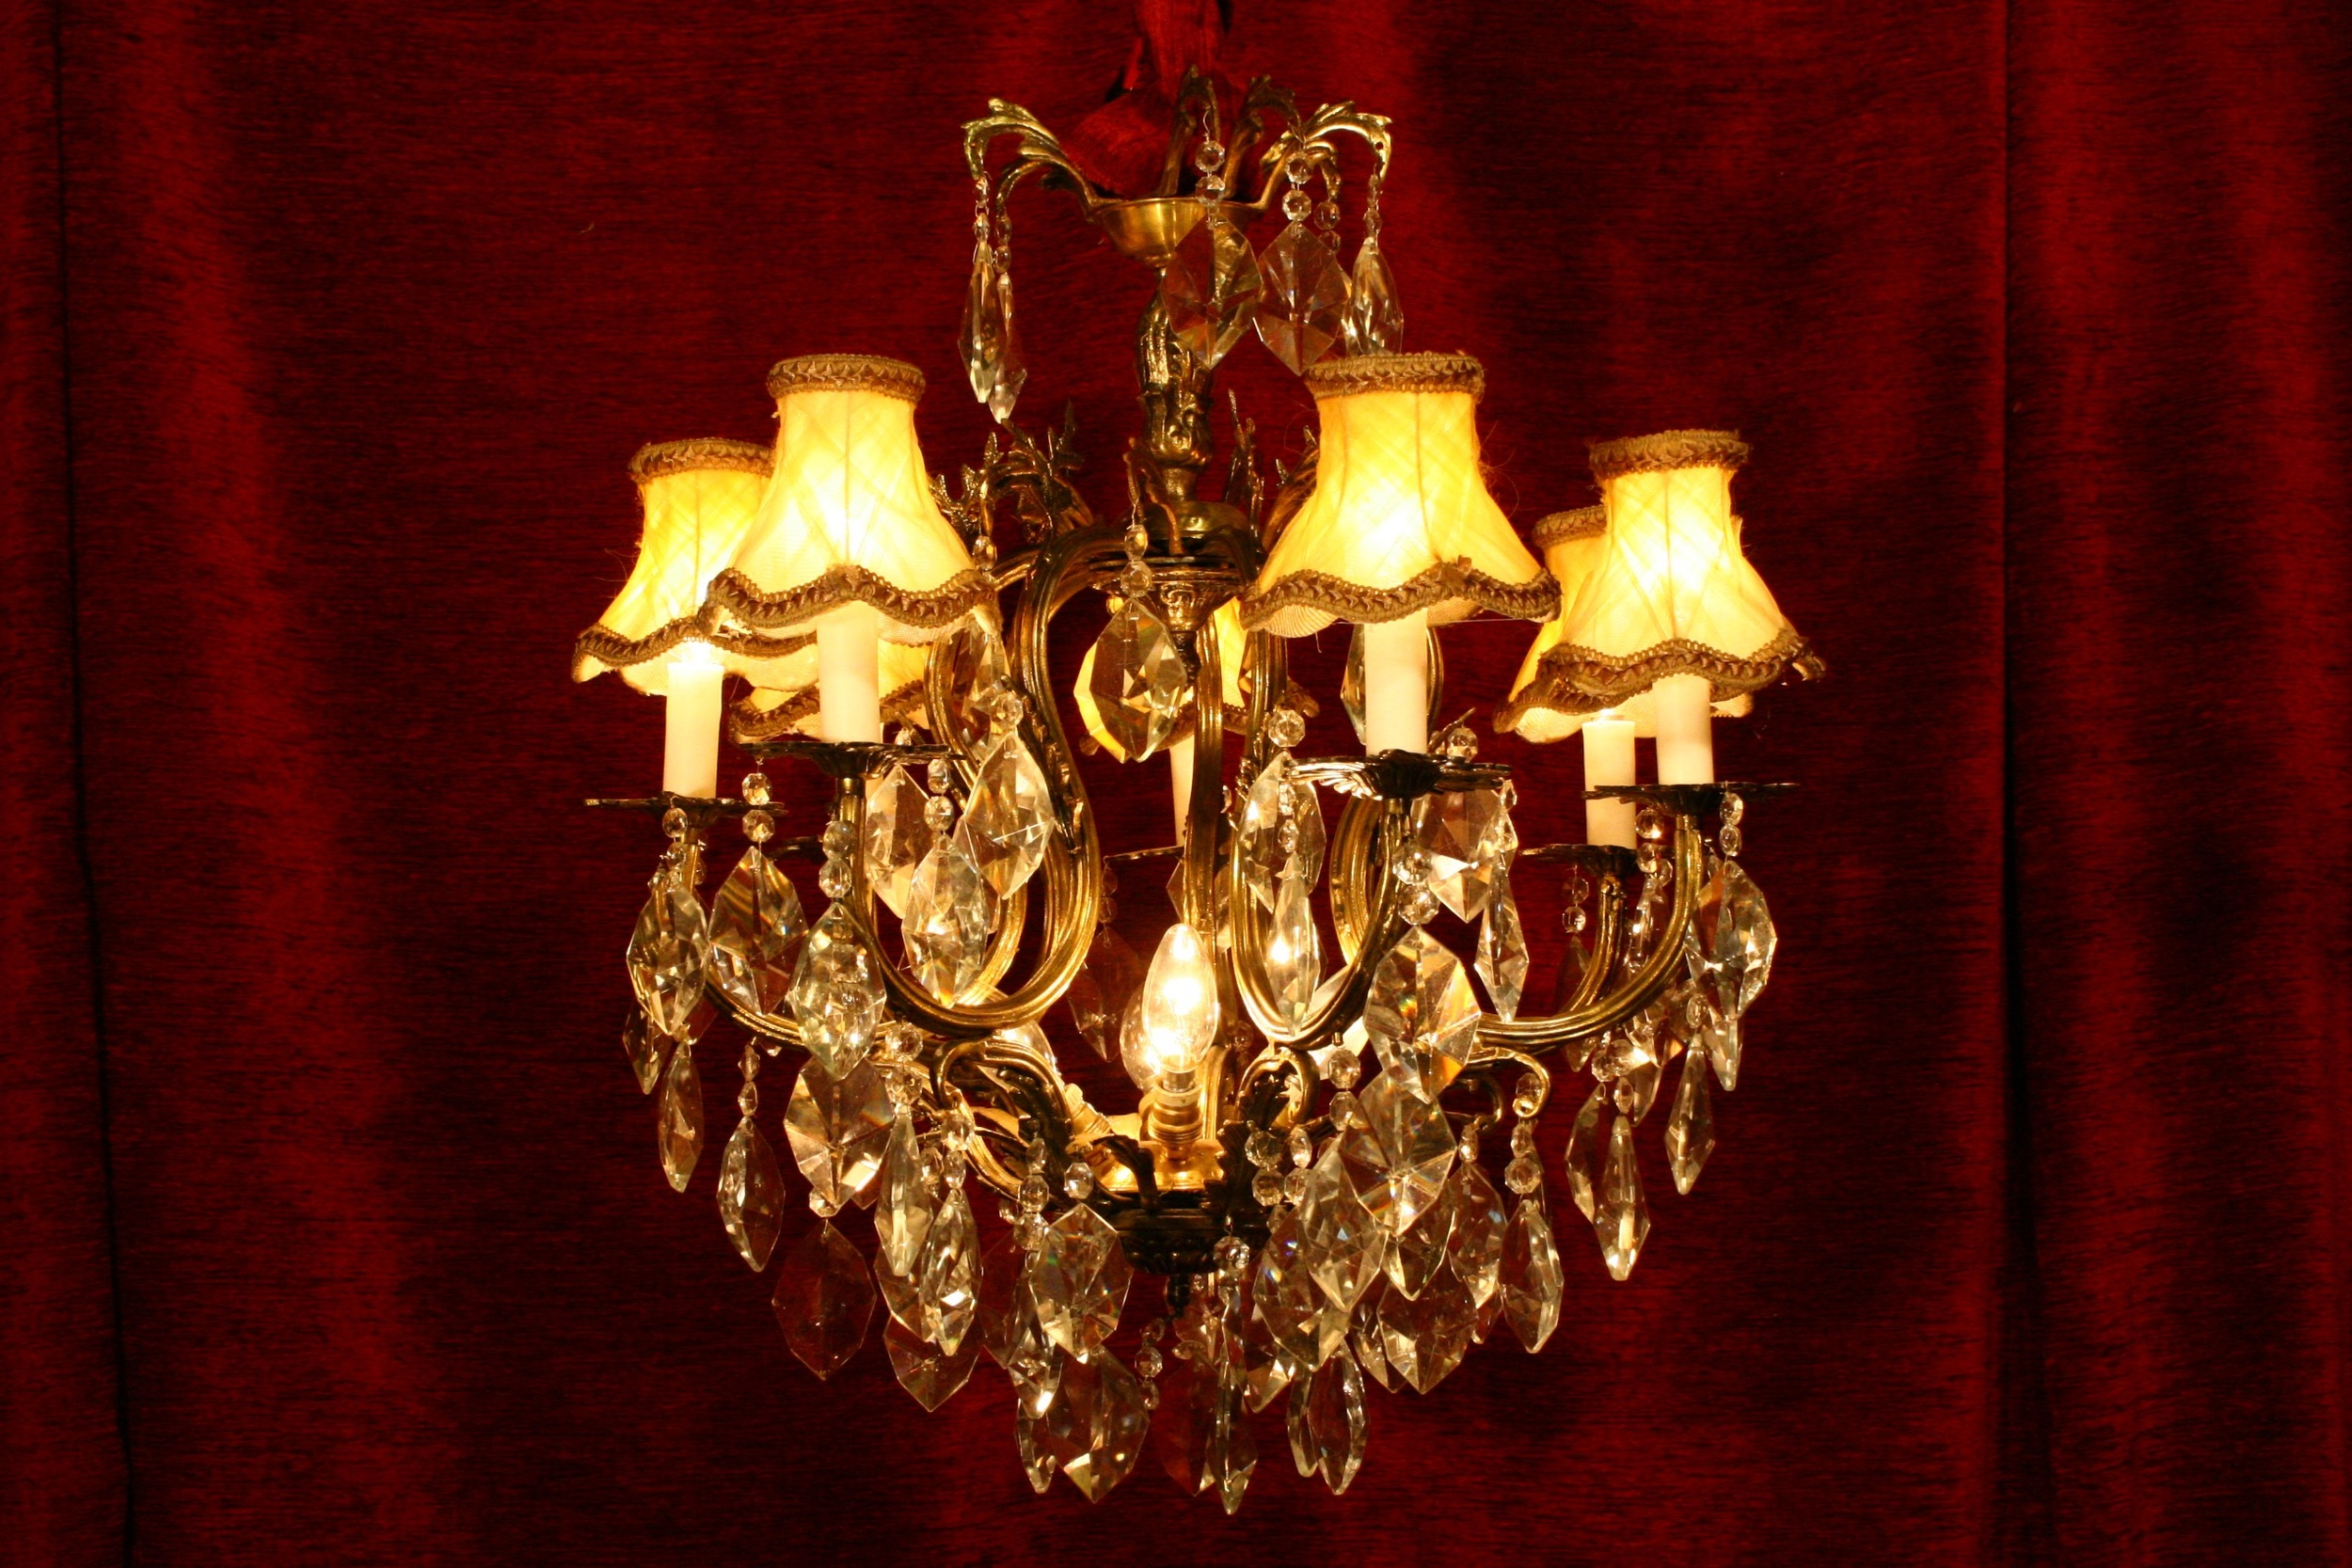 Renaissance Antique Dublin Ireland 7 ARM BRASS AND GLASS CHANDELIER